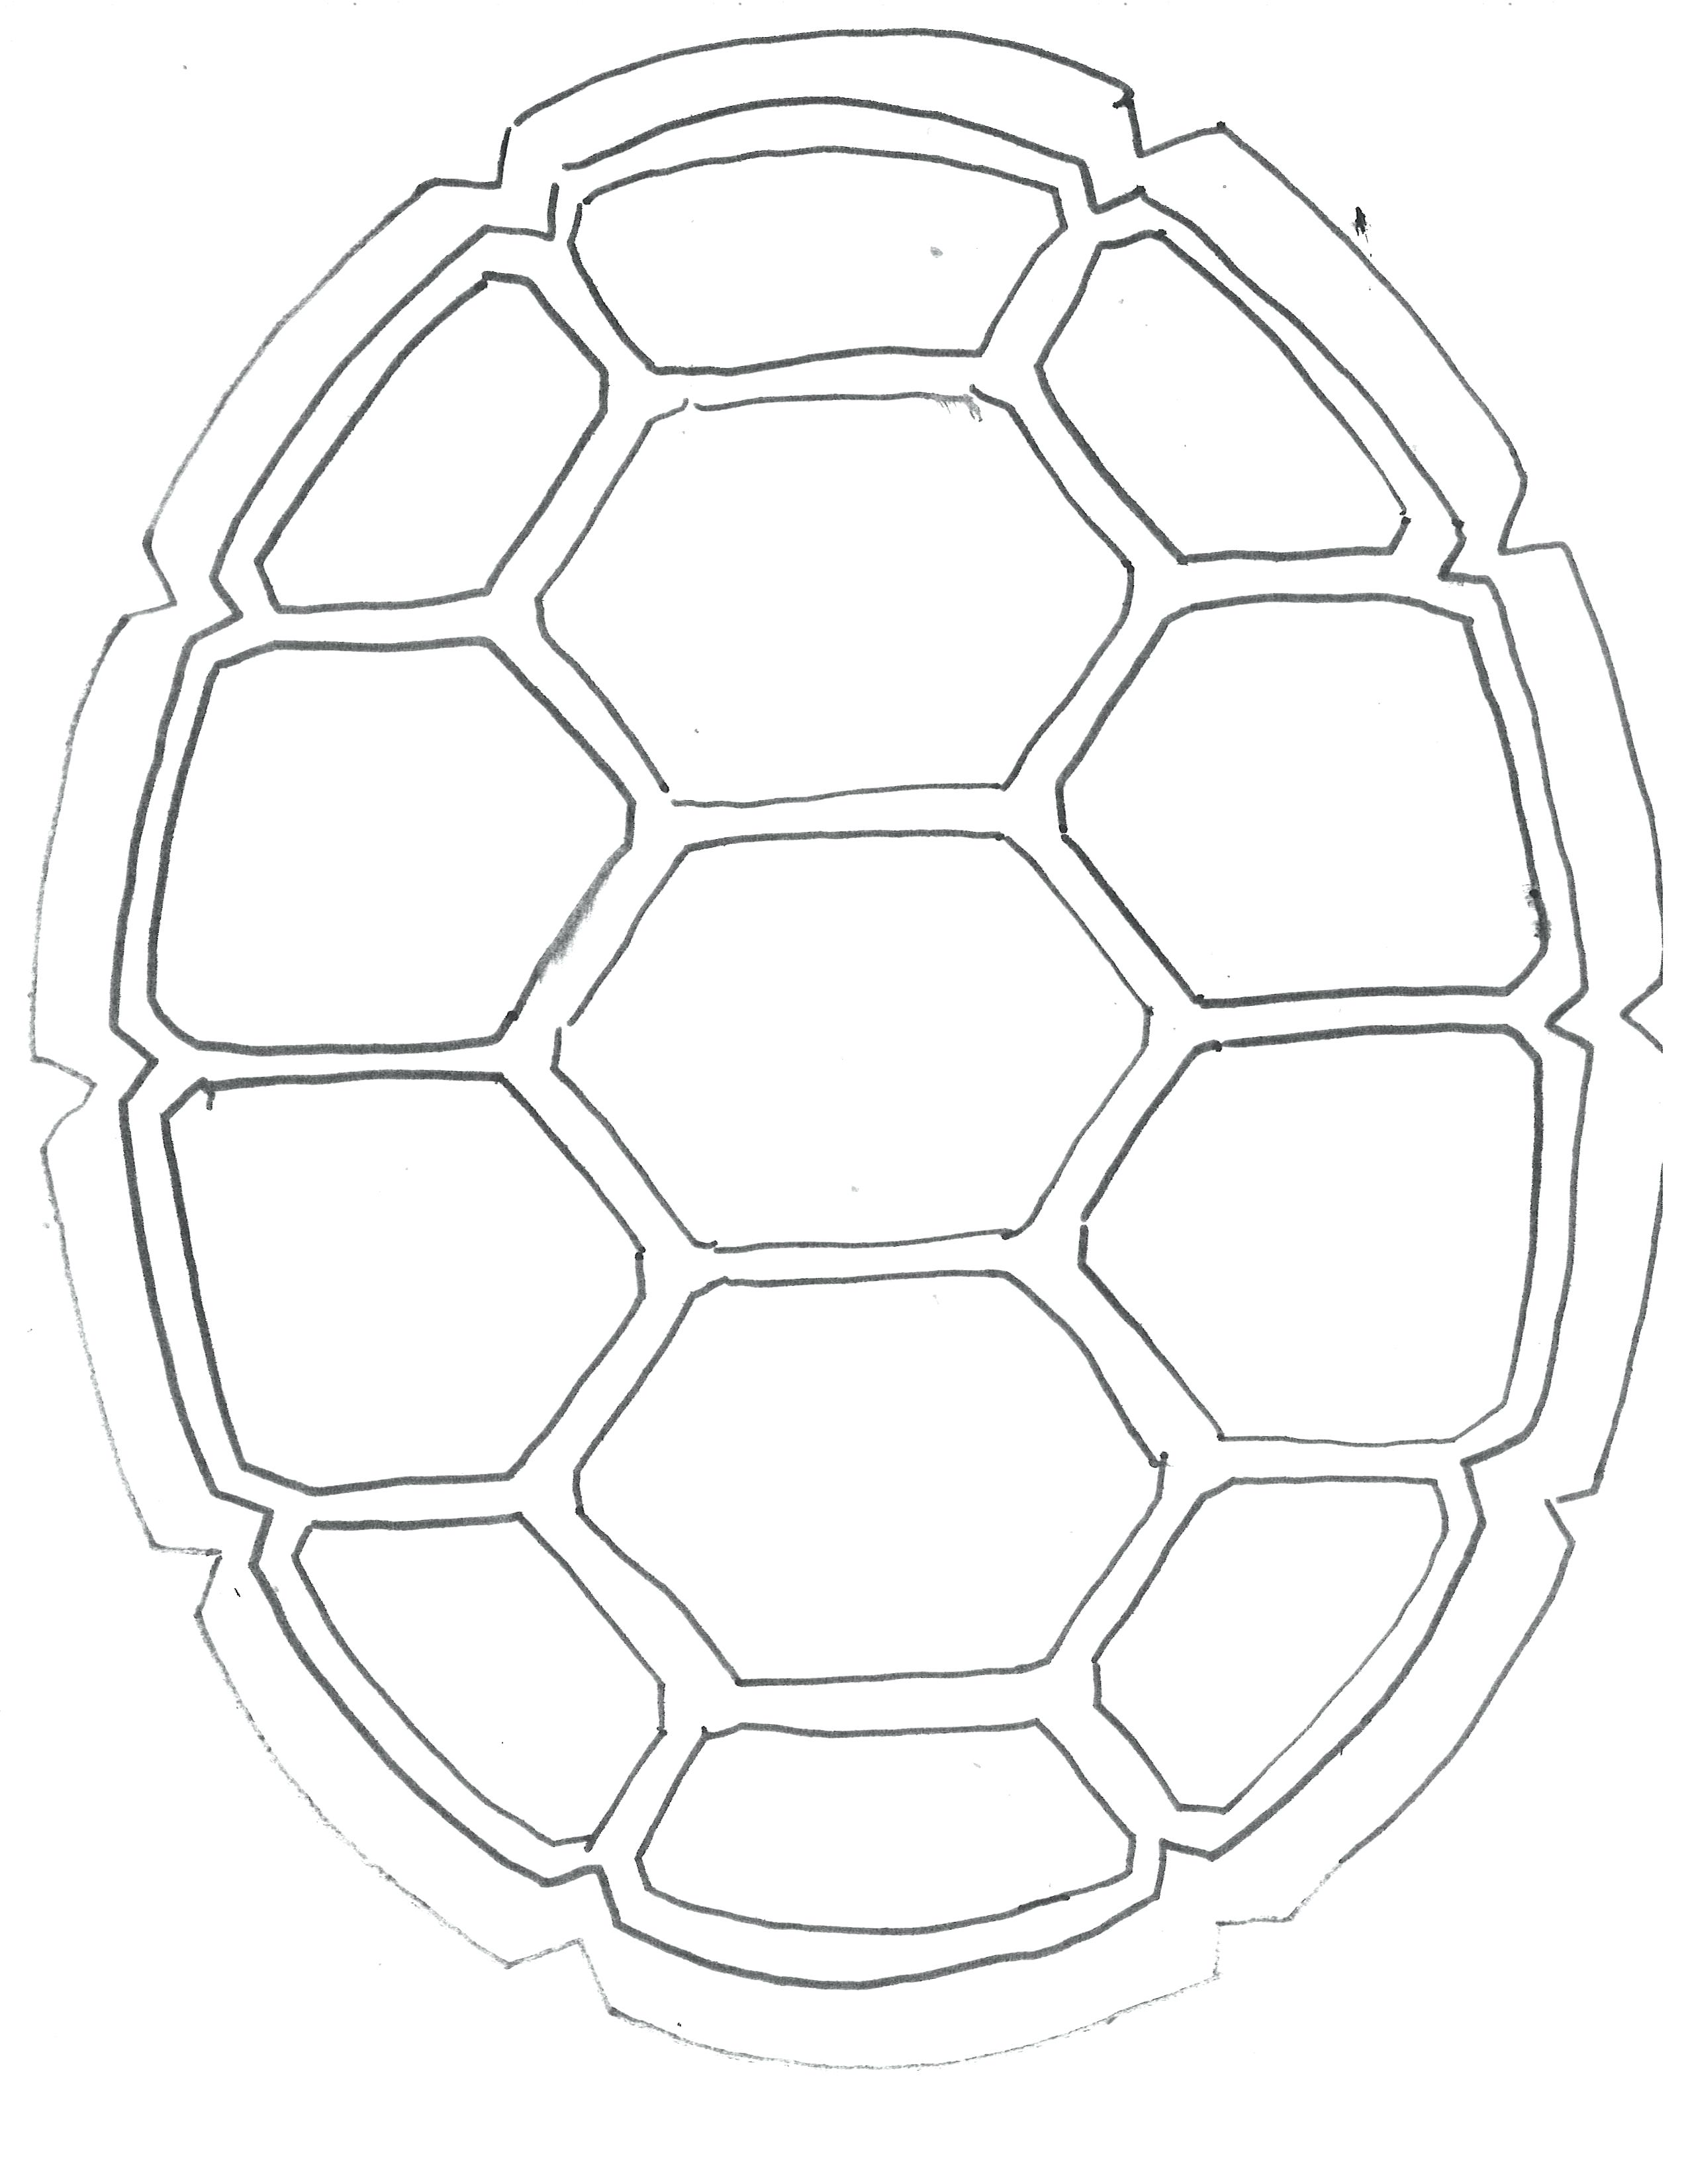 Soccer Ball Drawing Template At Getdrawings